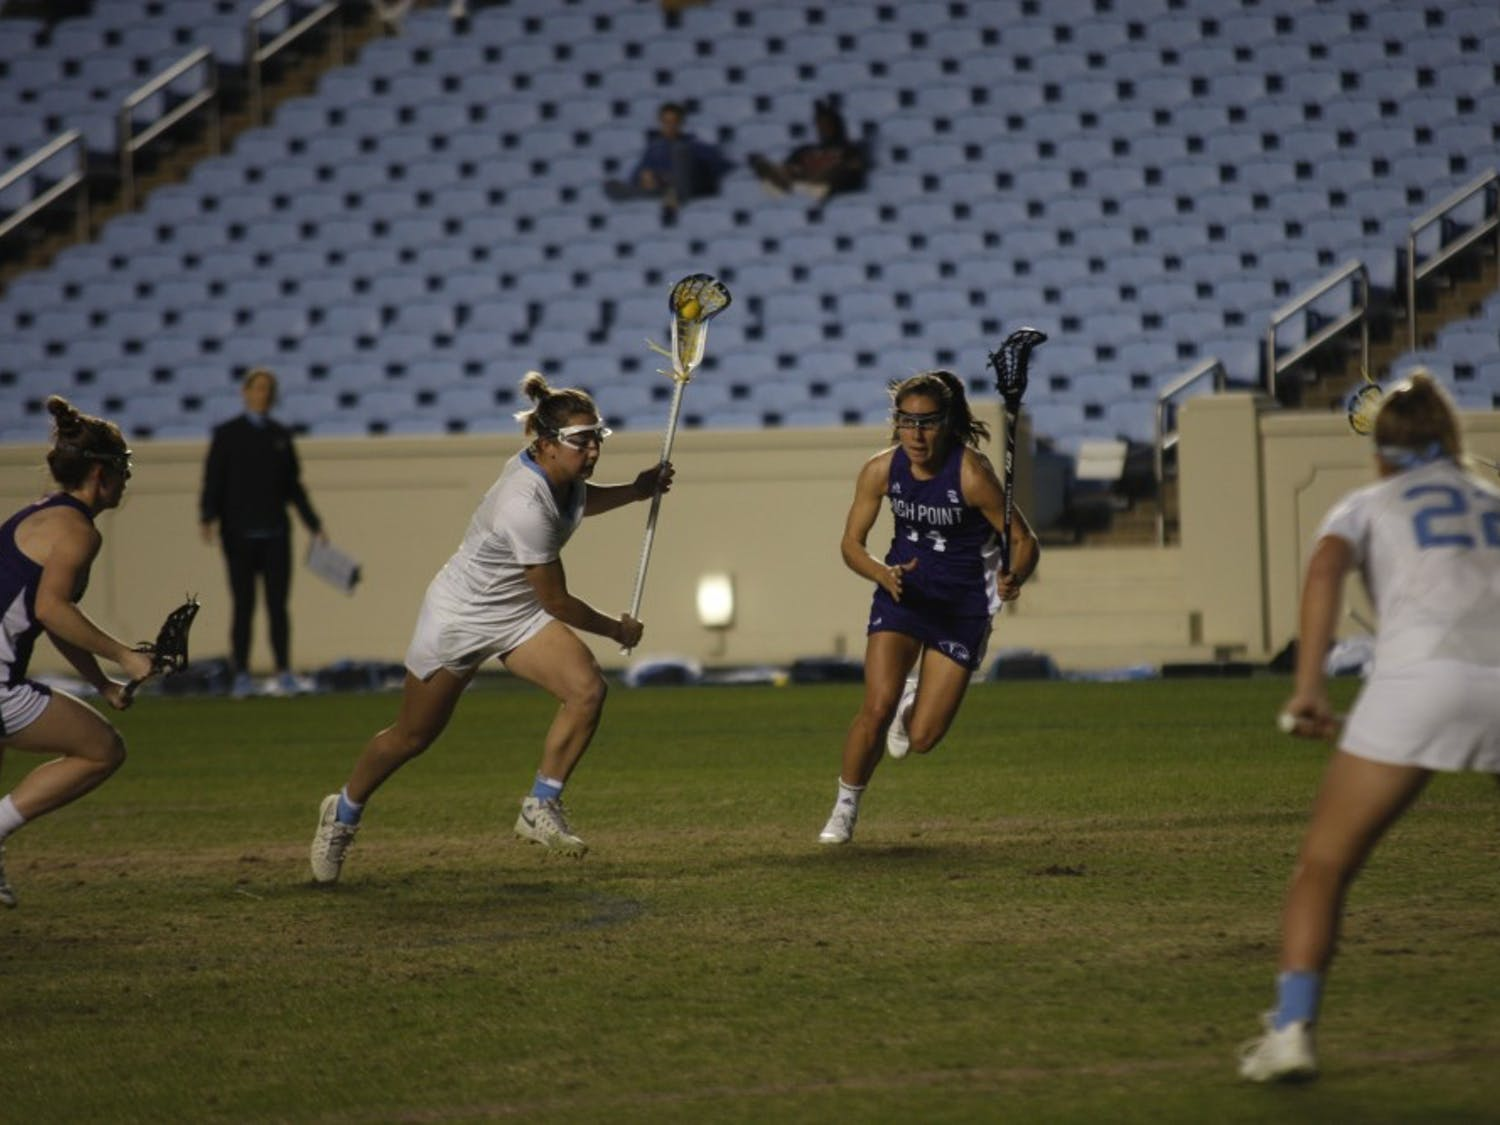 UNC sophomore attacker Jamie Ortega (3) takes a penalty shot against High Point in Kenan Memorial Stadium on Friday, Feb. 15, 2019. UNC won 13-9.